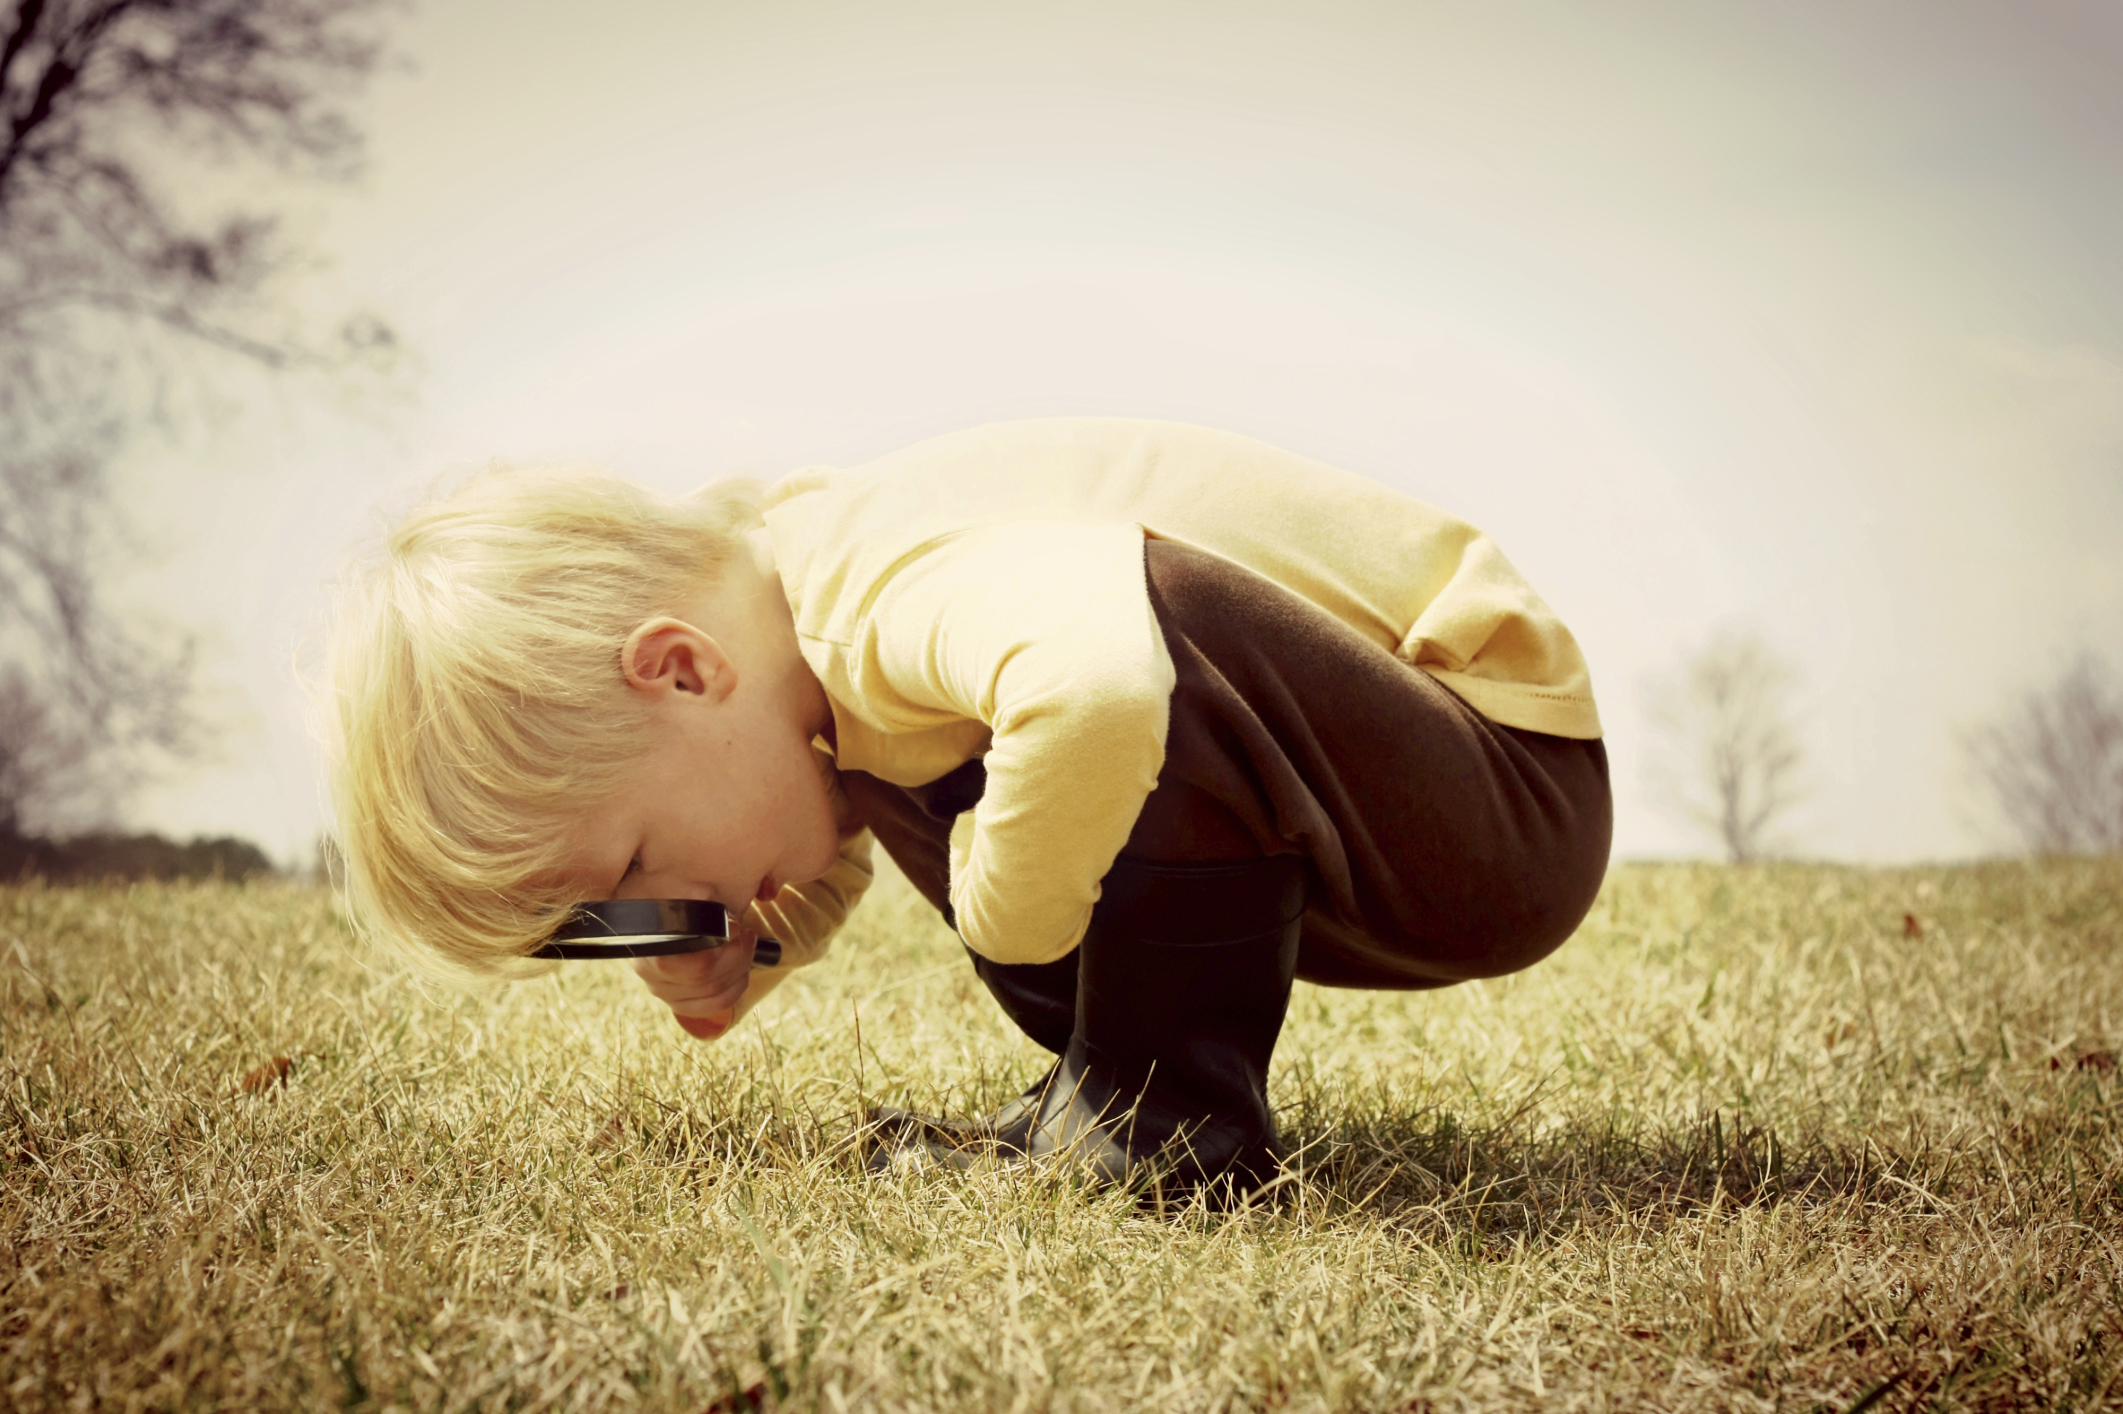 young boy bent over looking at the grass